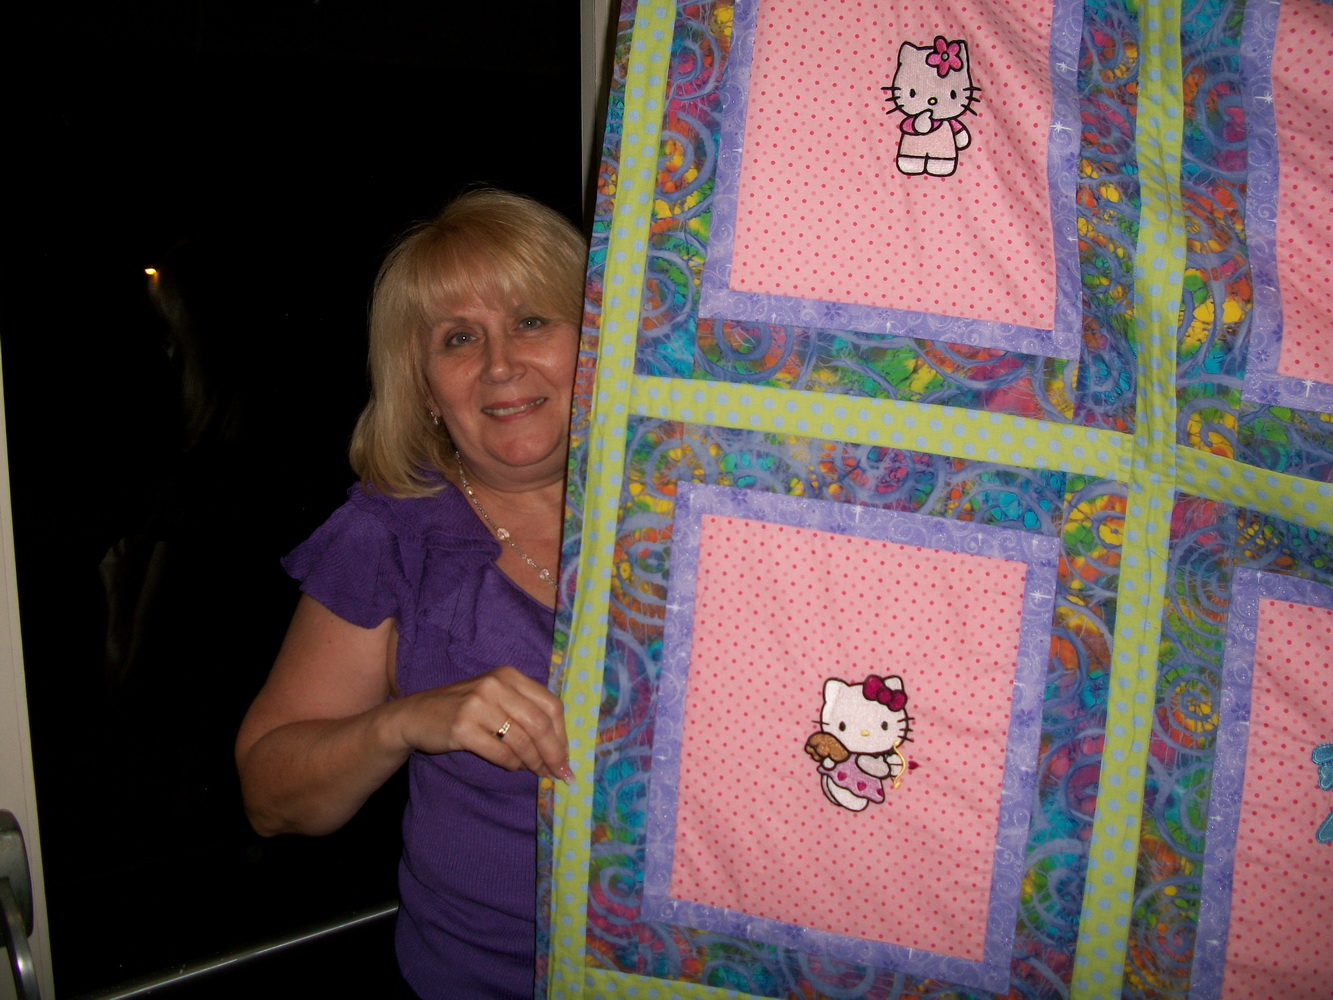 Hello Kitty designs on embroidered blanket